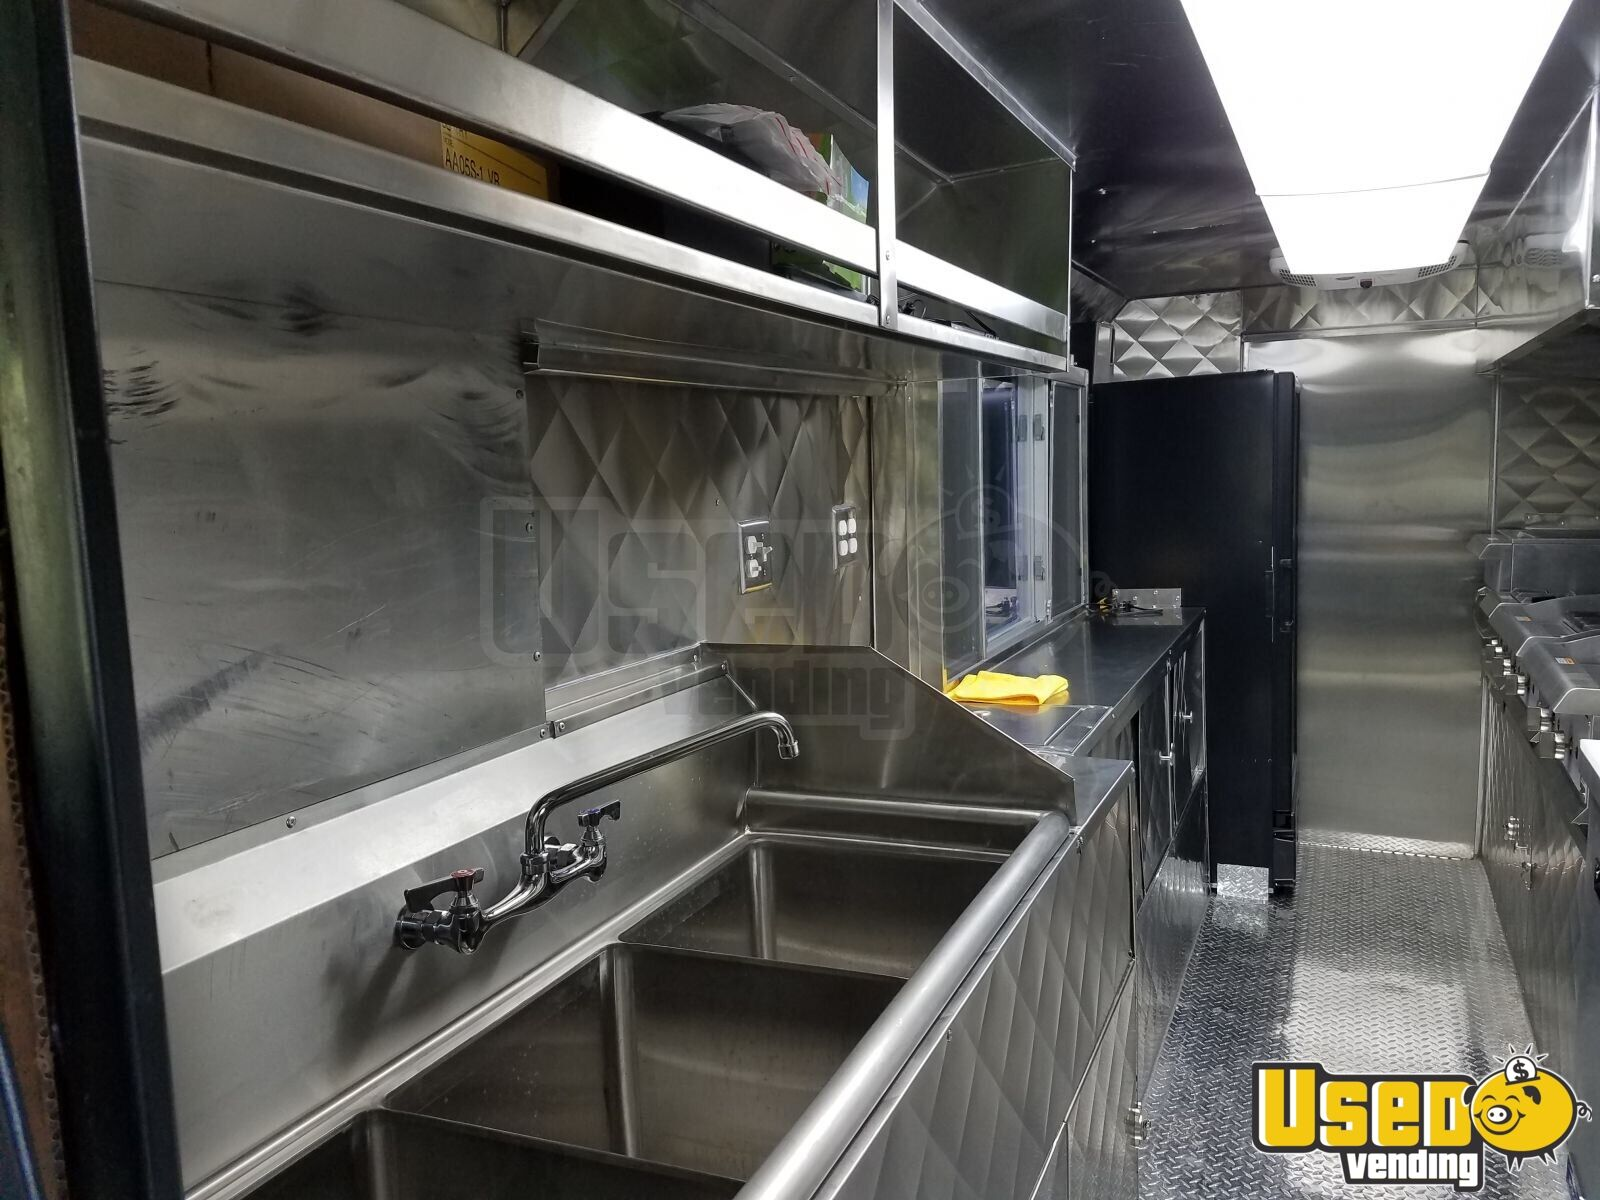 2000 Chevrolet Workhorse P32 All-purpose Food Truck Stainless Steel Wall Covers Texas Diesel Engine for Sale - 5